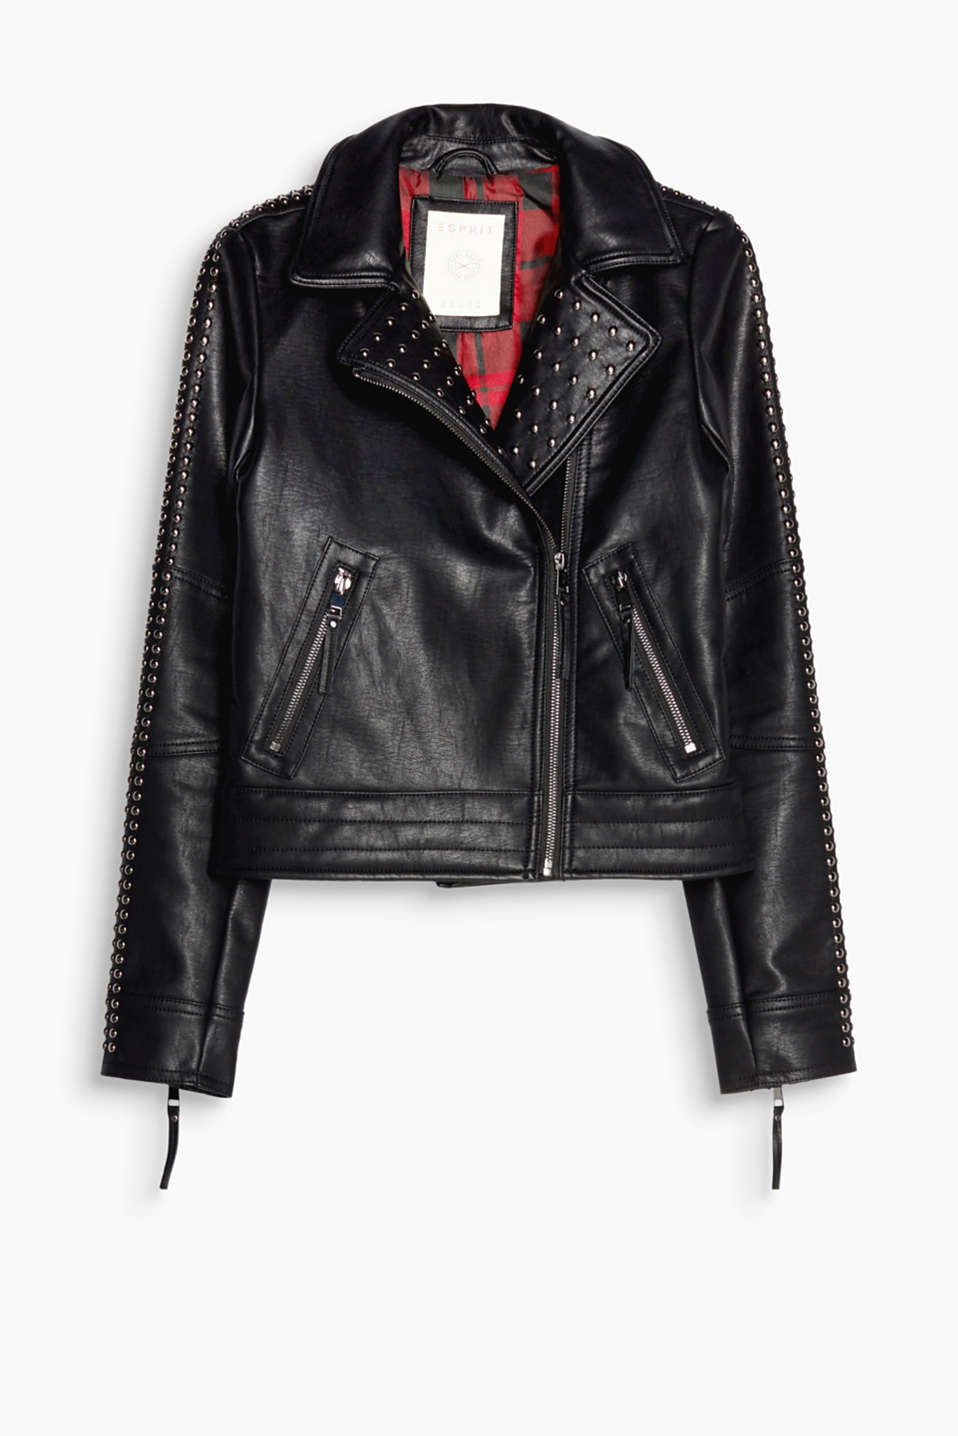 Punk-inspired style with decorative studs: faux leather biker jacket with a wide lapel and an asymmetric zip